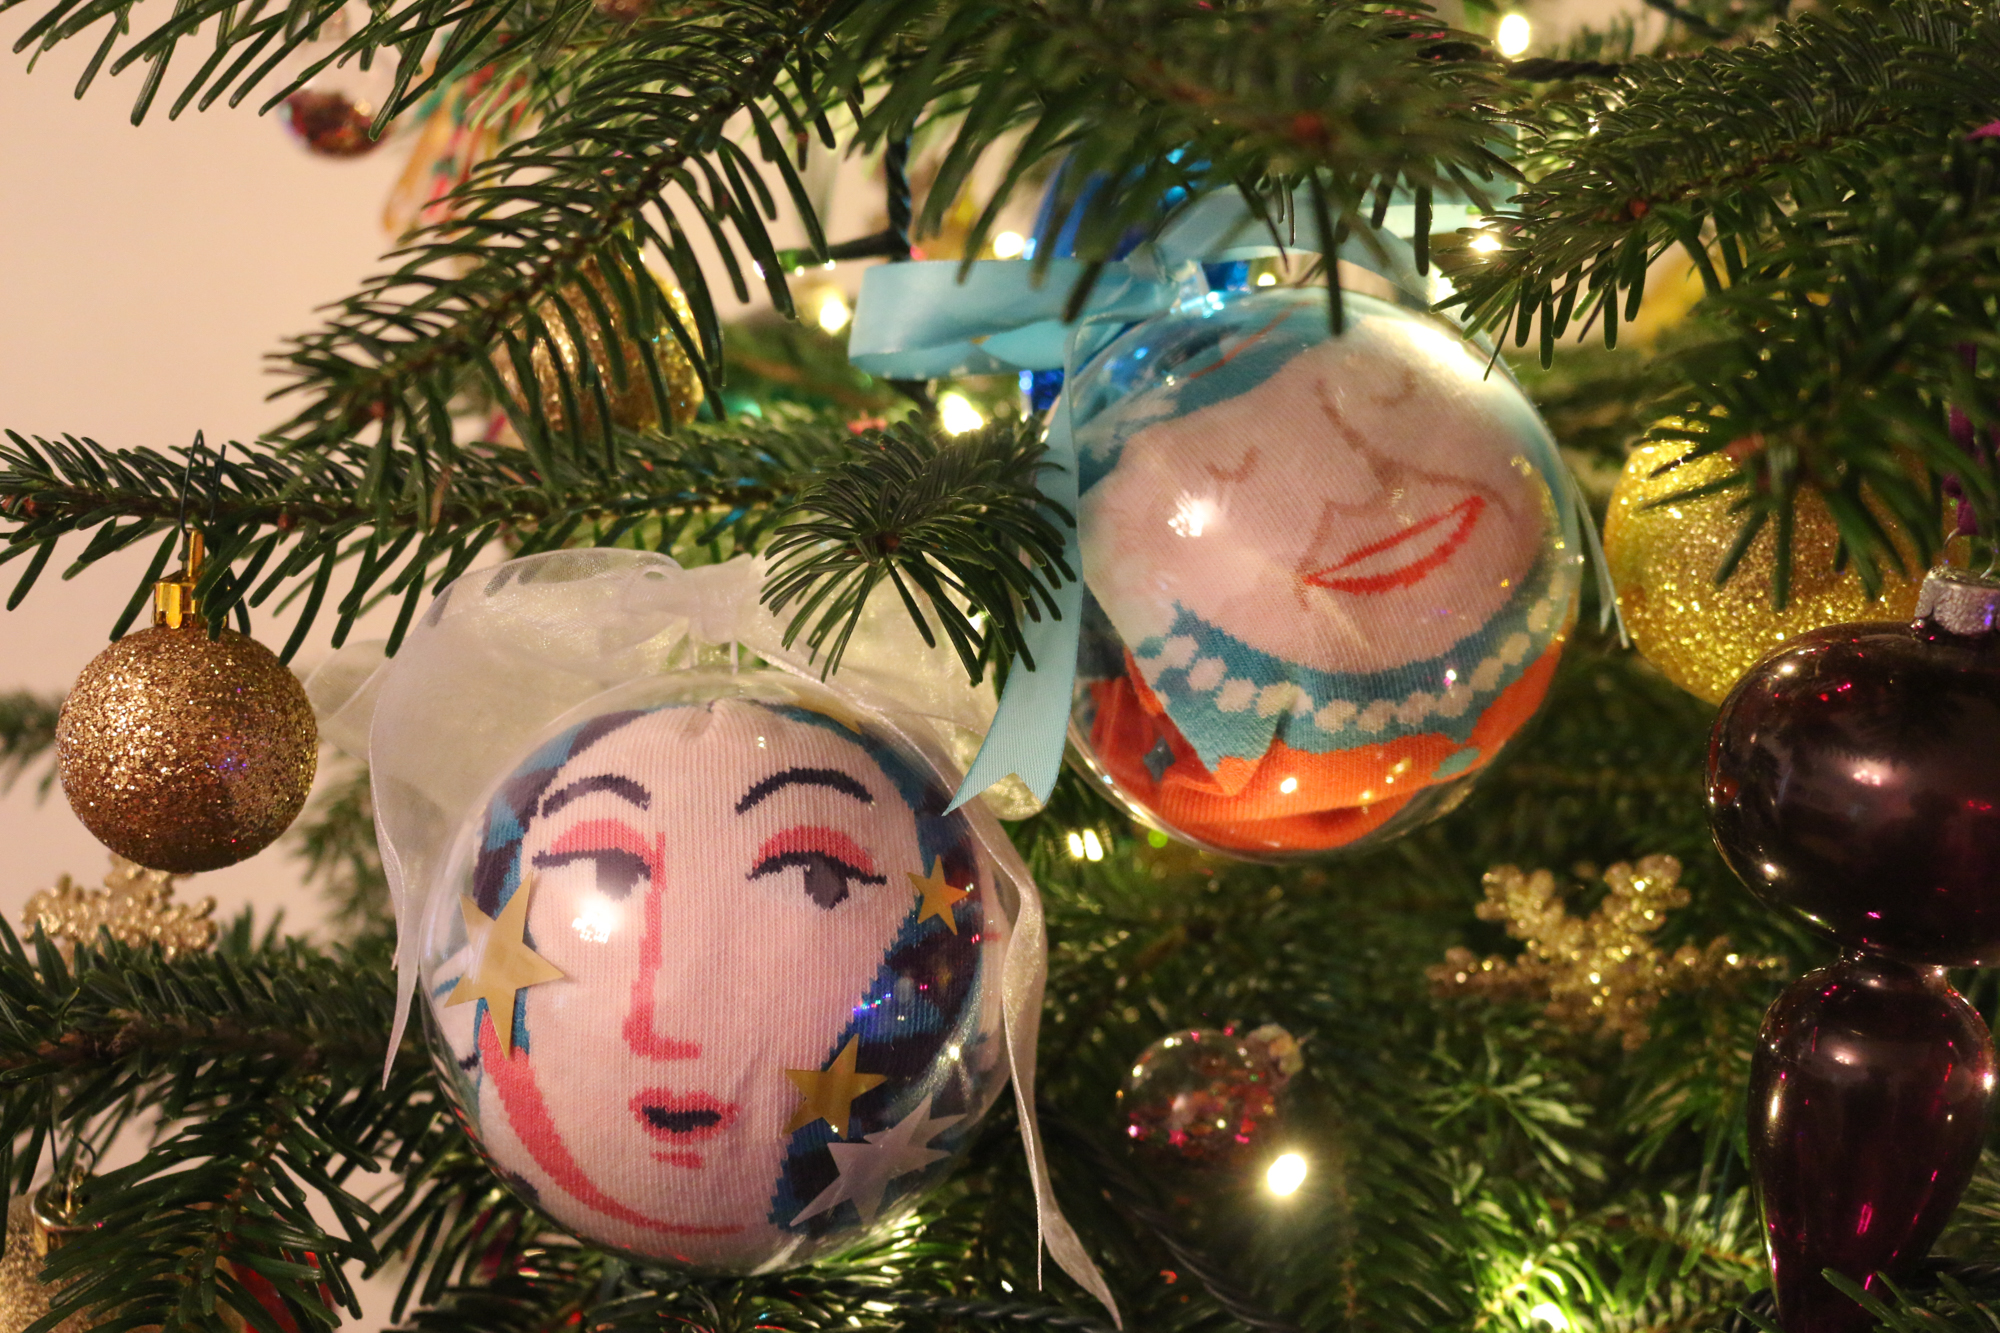 Low-cost art & craft ideas to create personalised Christmas decor